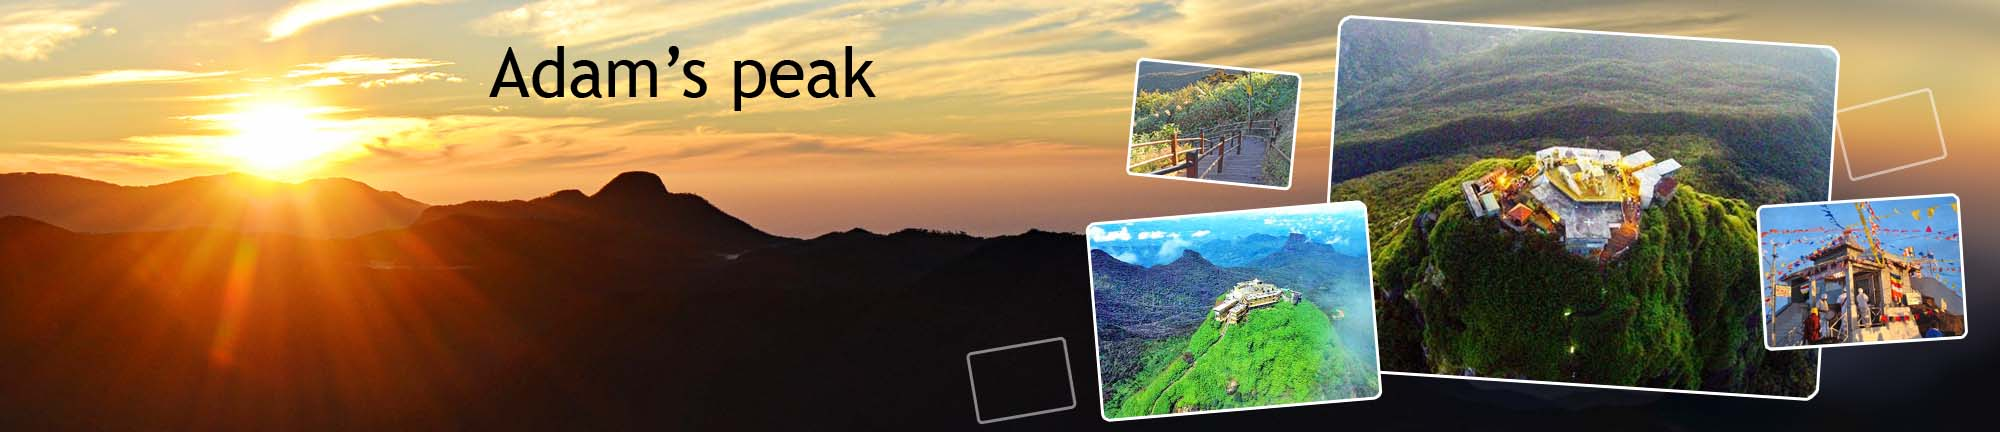 inora-travel-lanka-adams-peak-banner